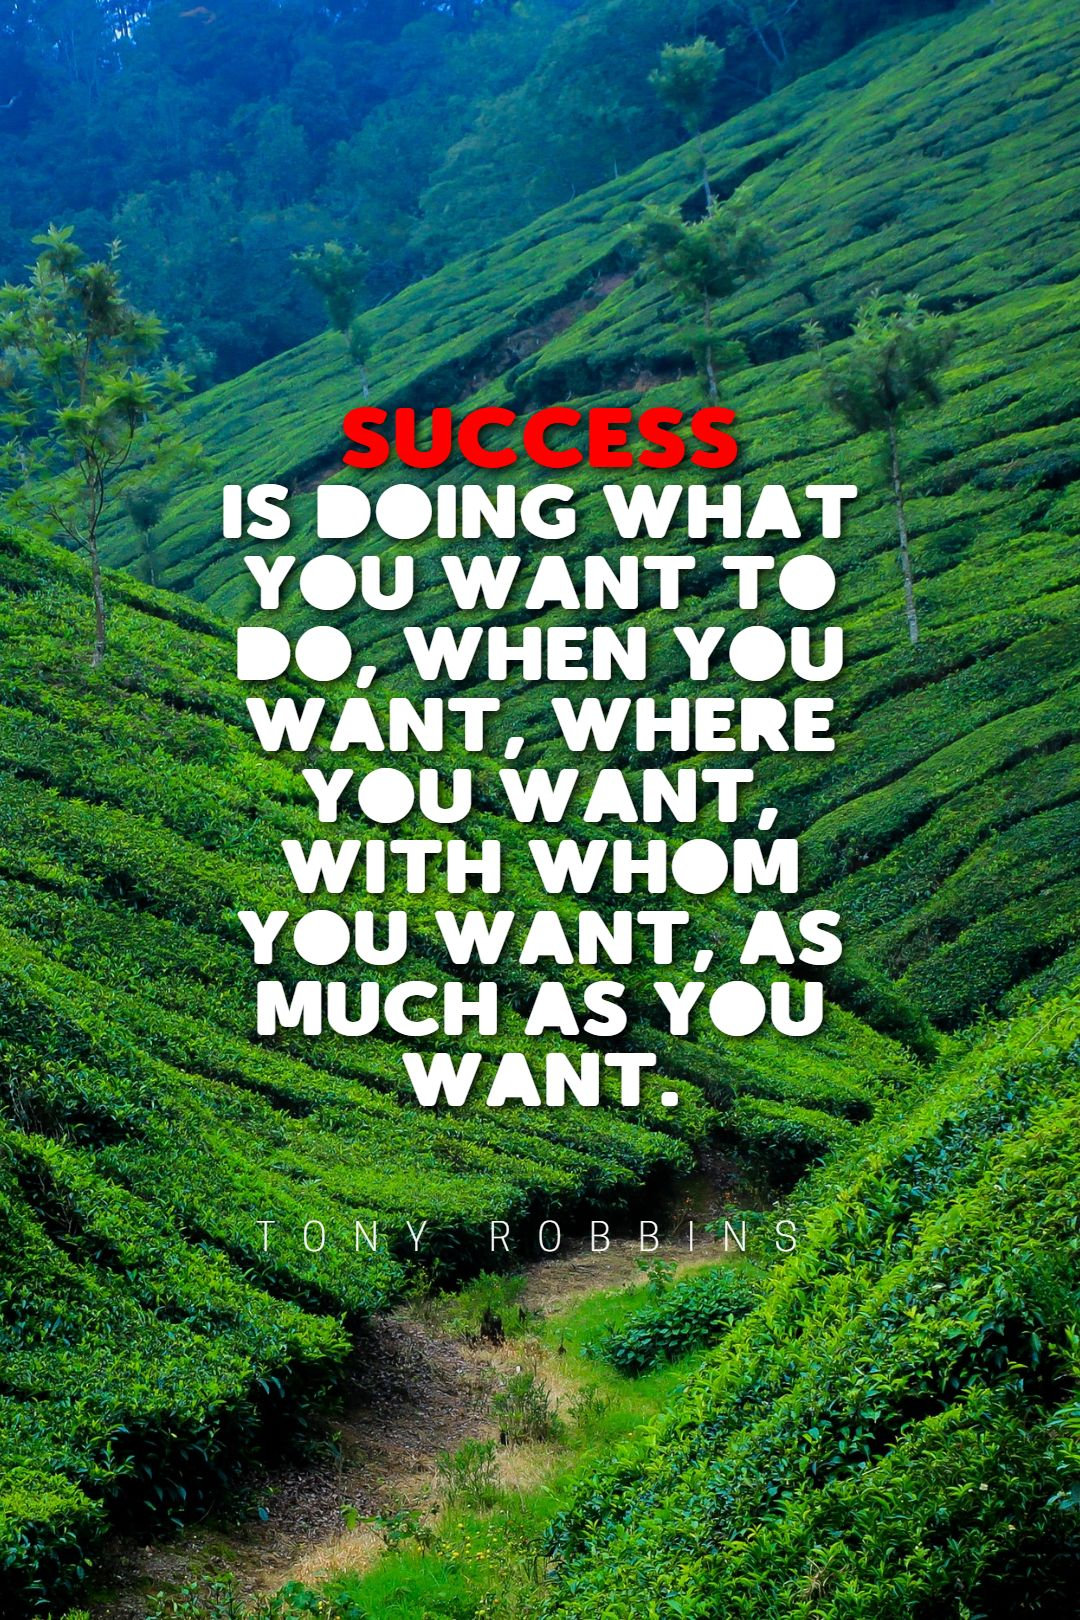 Quotes image of Success is doing what you want to do, when you want, where you want, with whom you want, as much as you want.